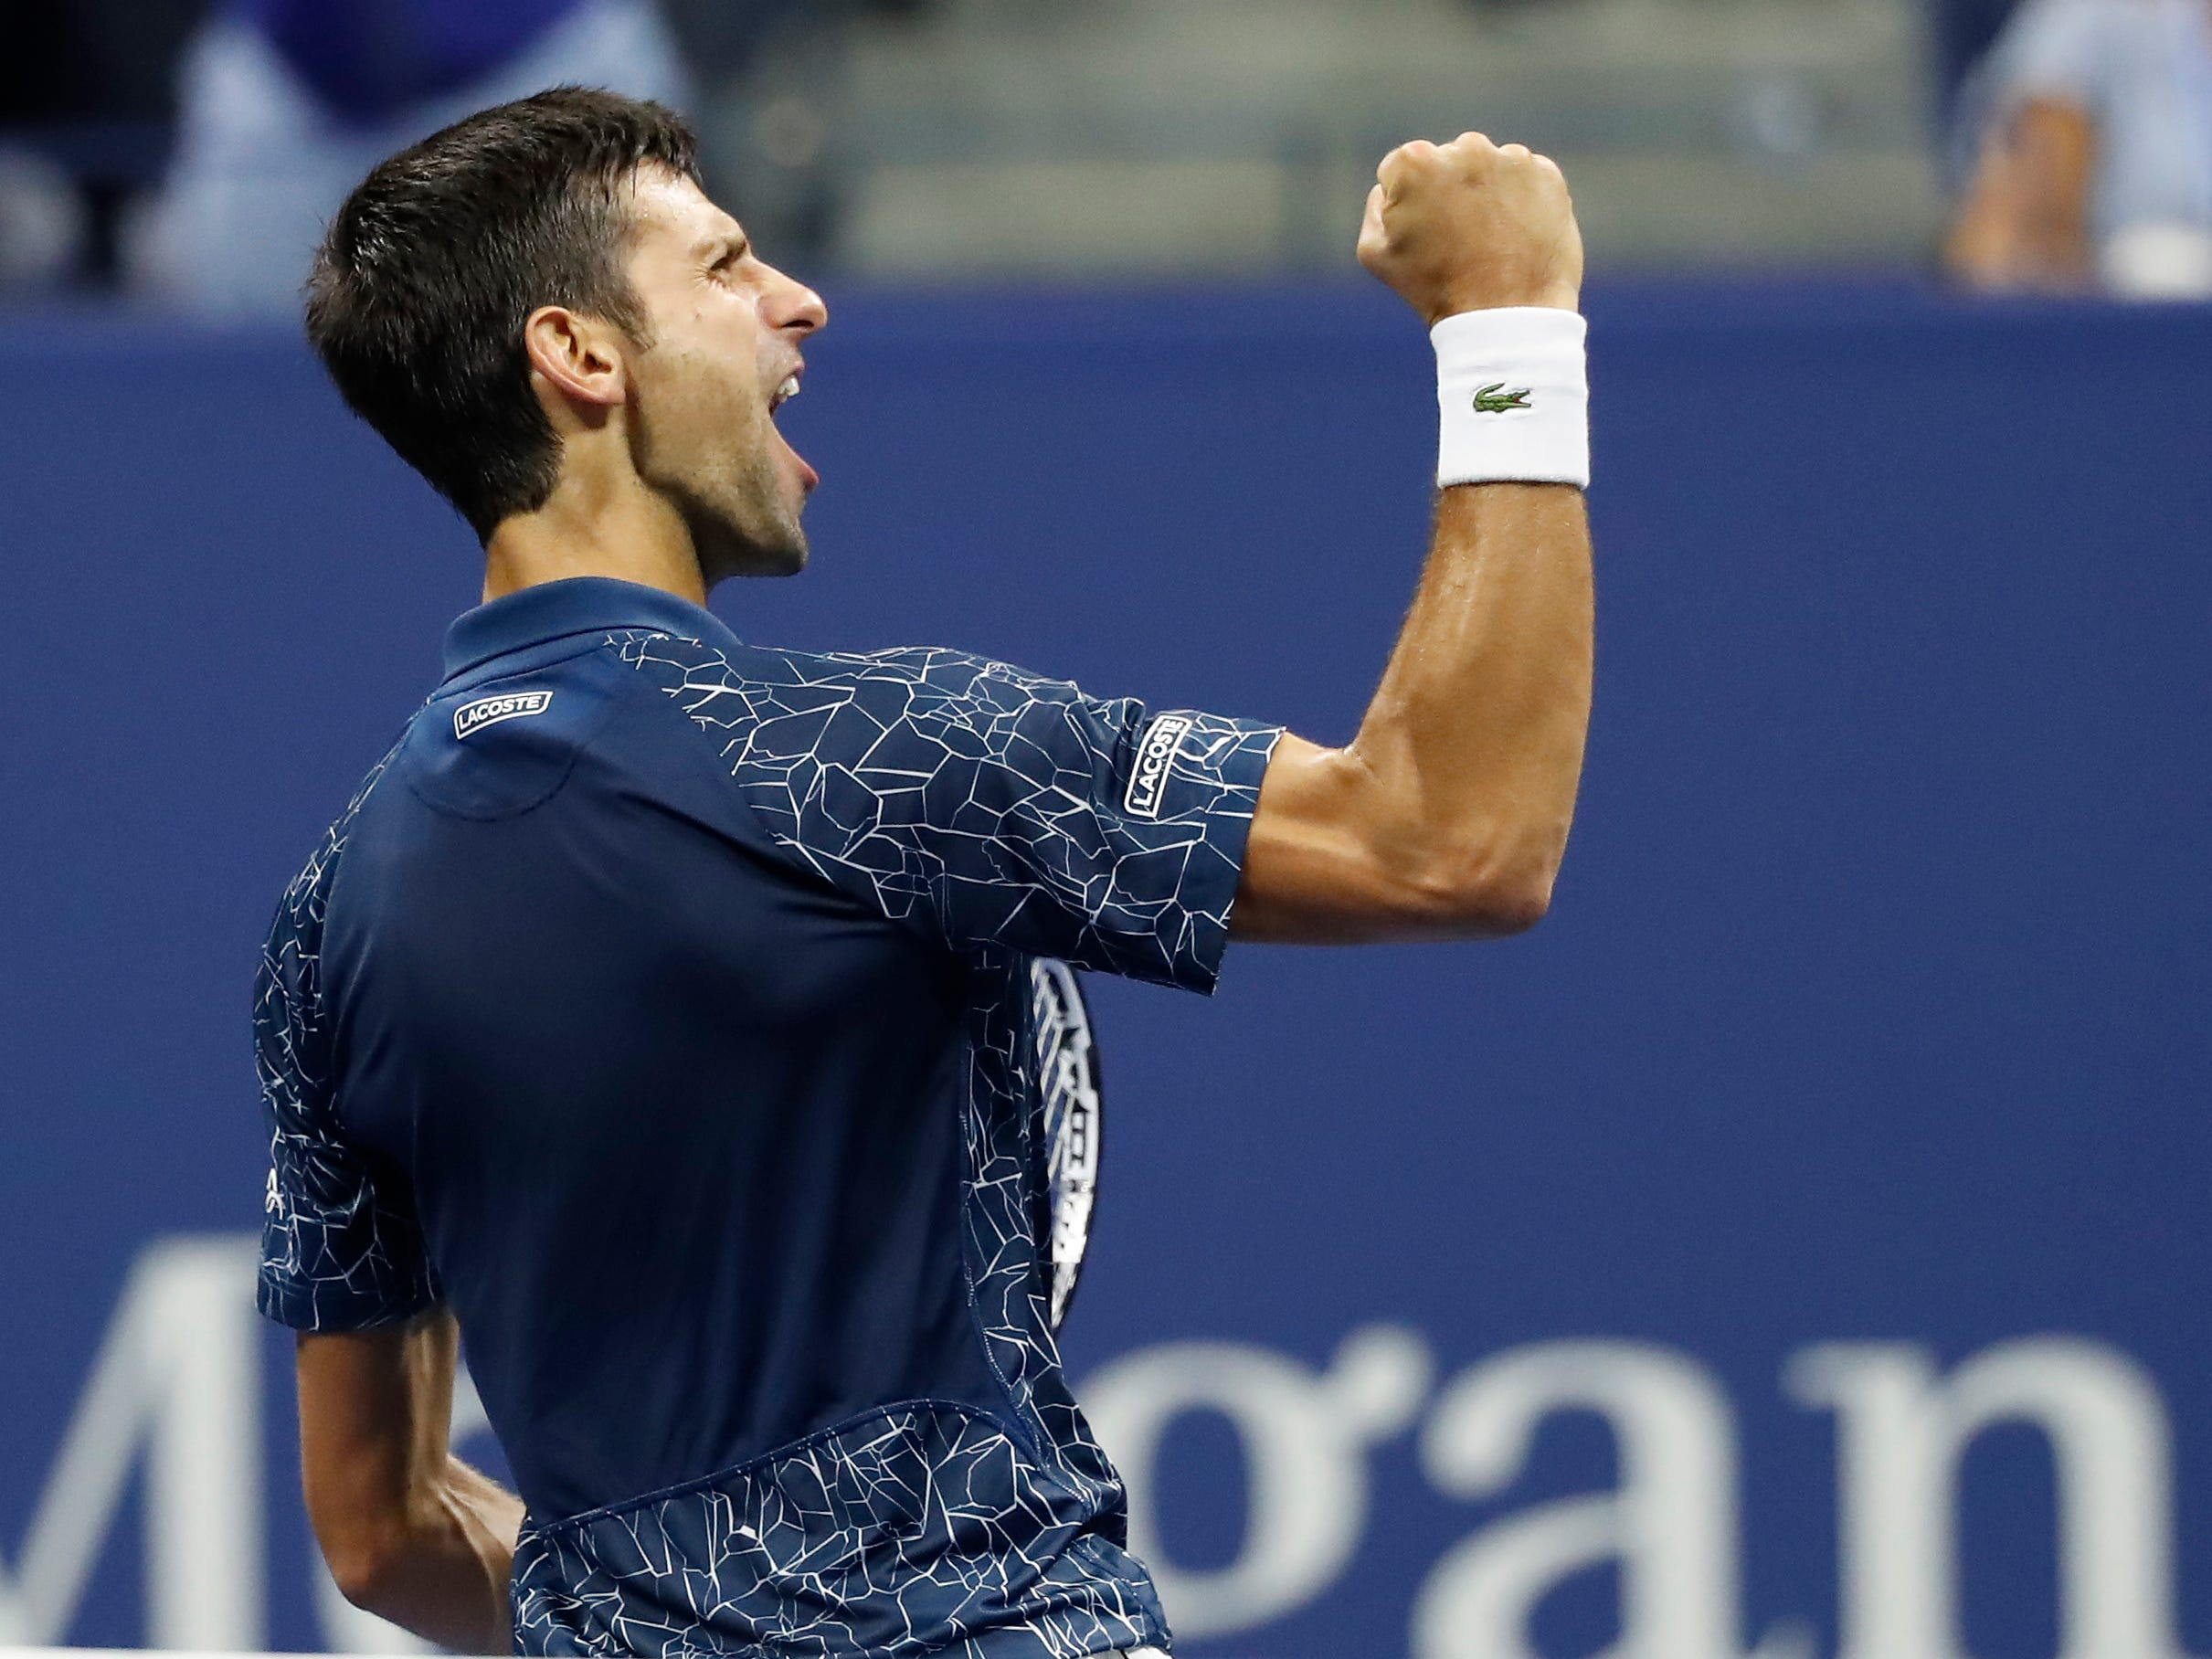 Novak Djokovic pumps his first after beating Kei Nishikori in the US Open semifinal.